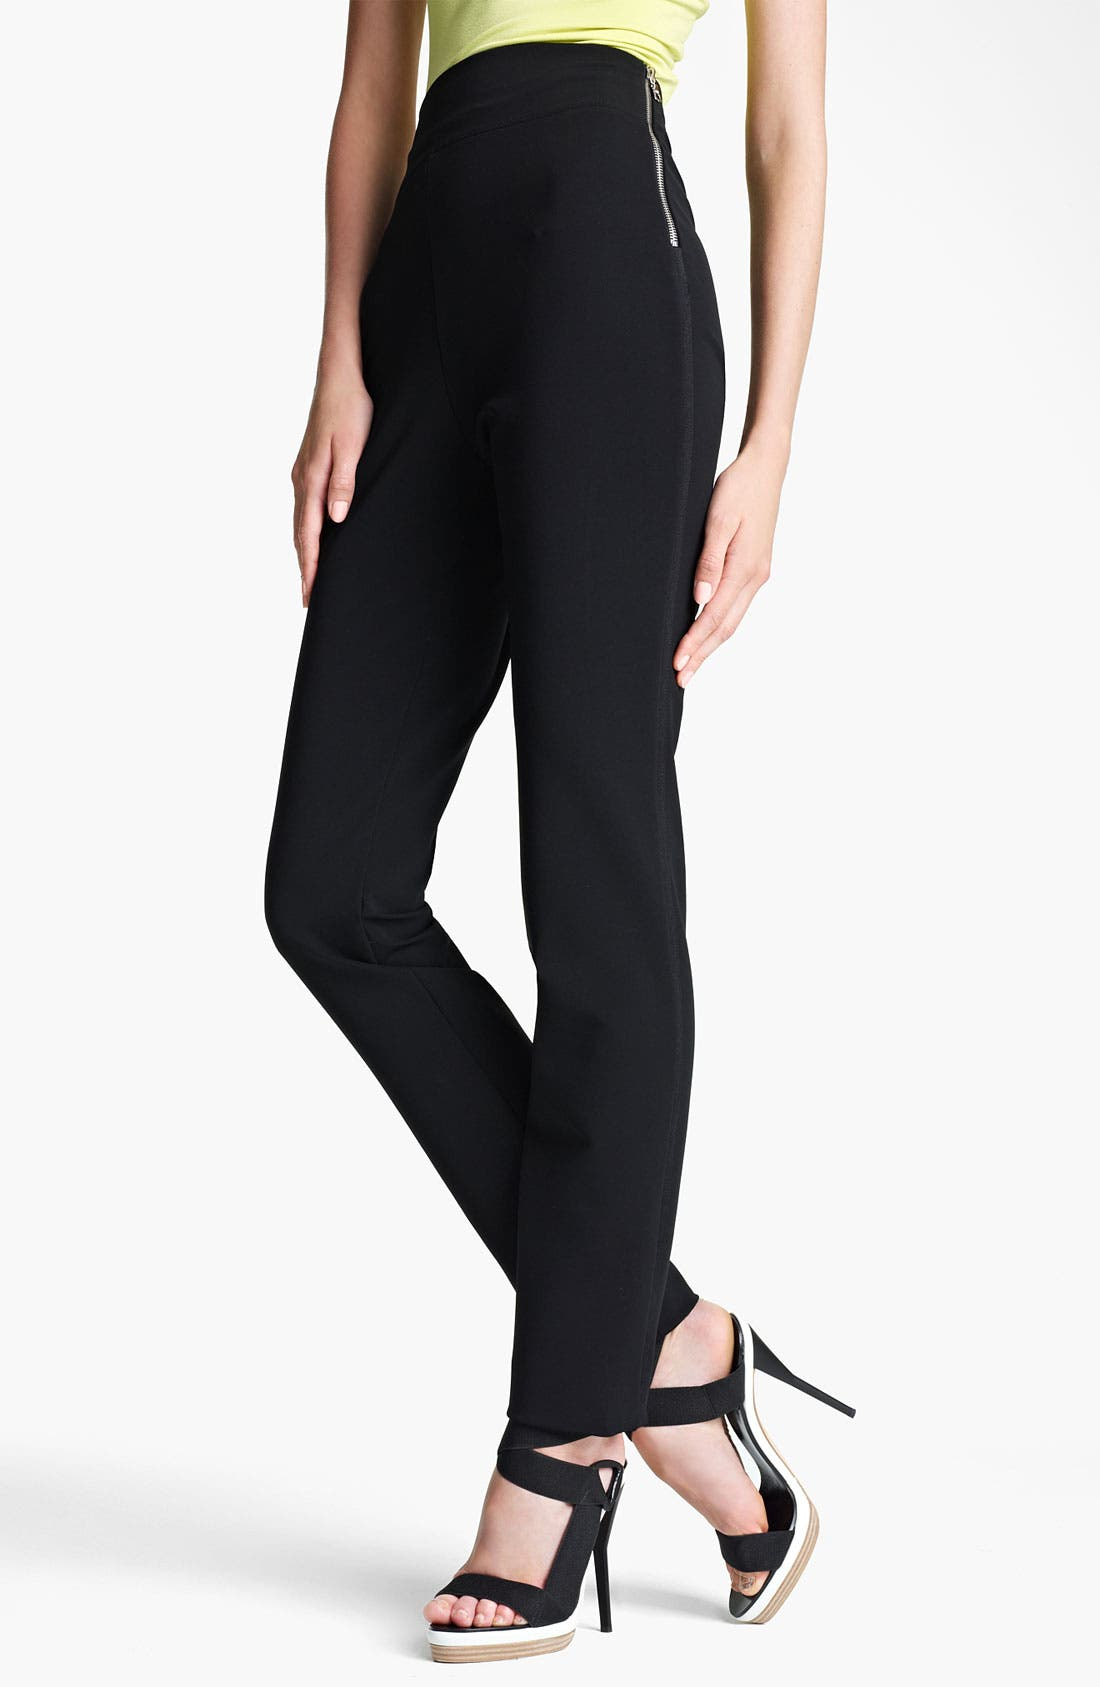 Alternate Image 1 Selected - Lida Baday High Waist Stretch Knit Pants